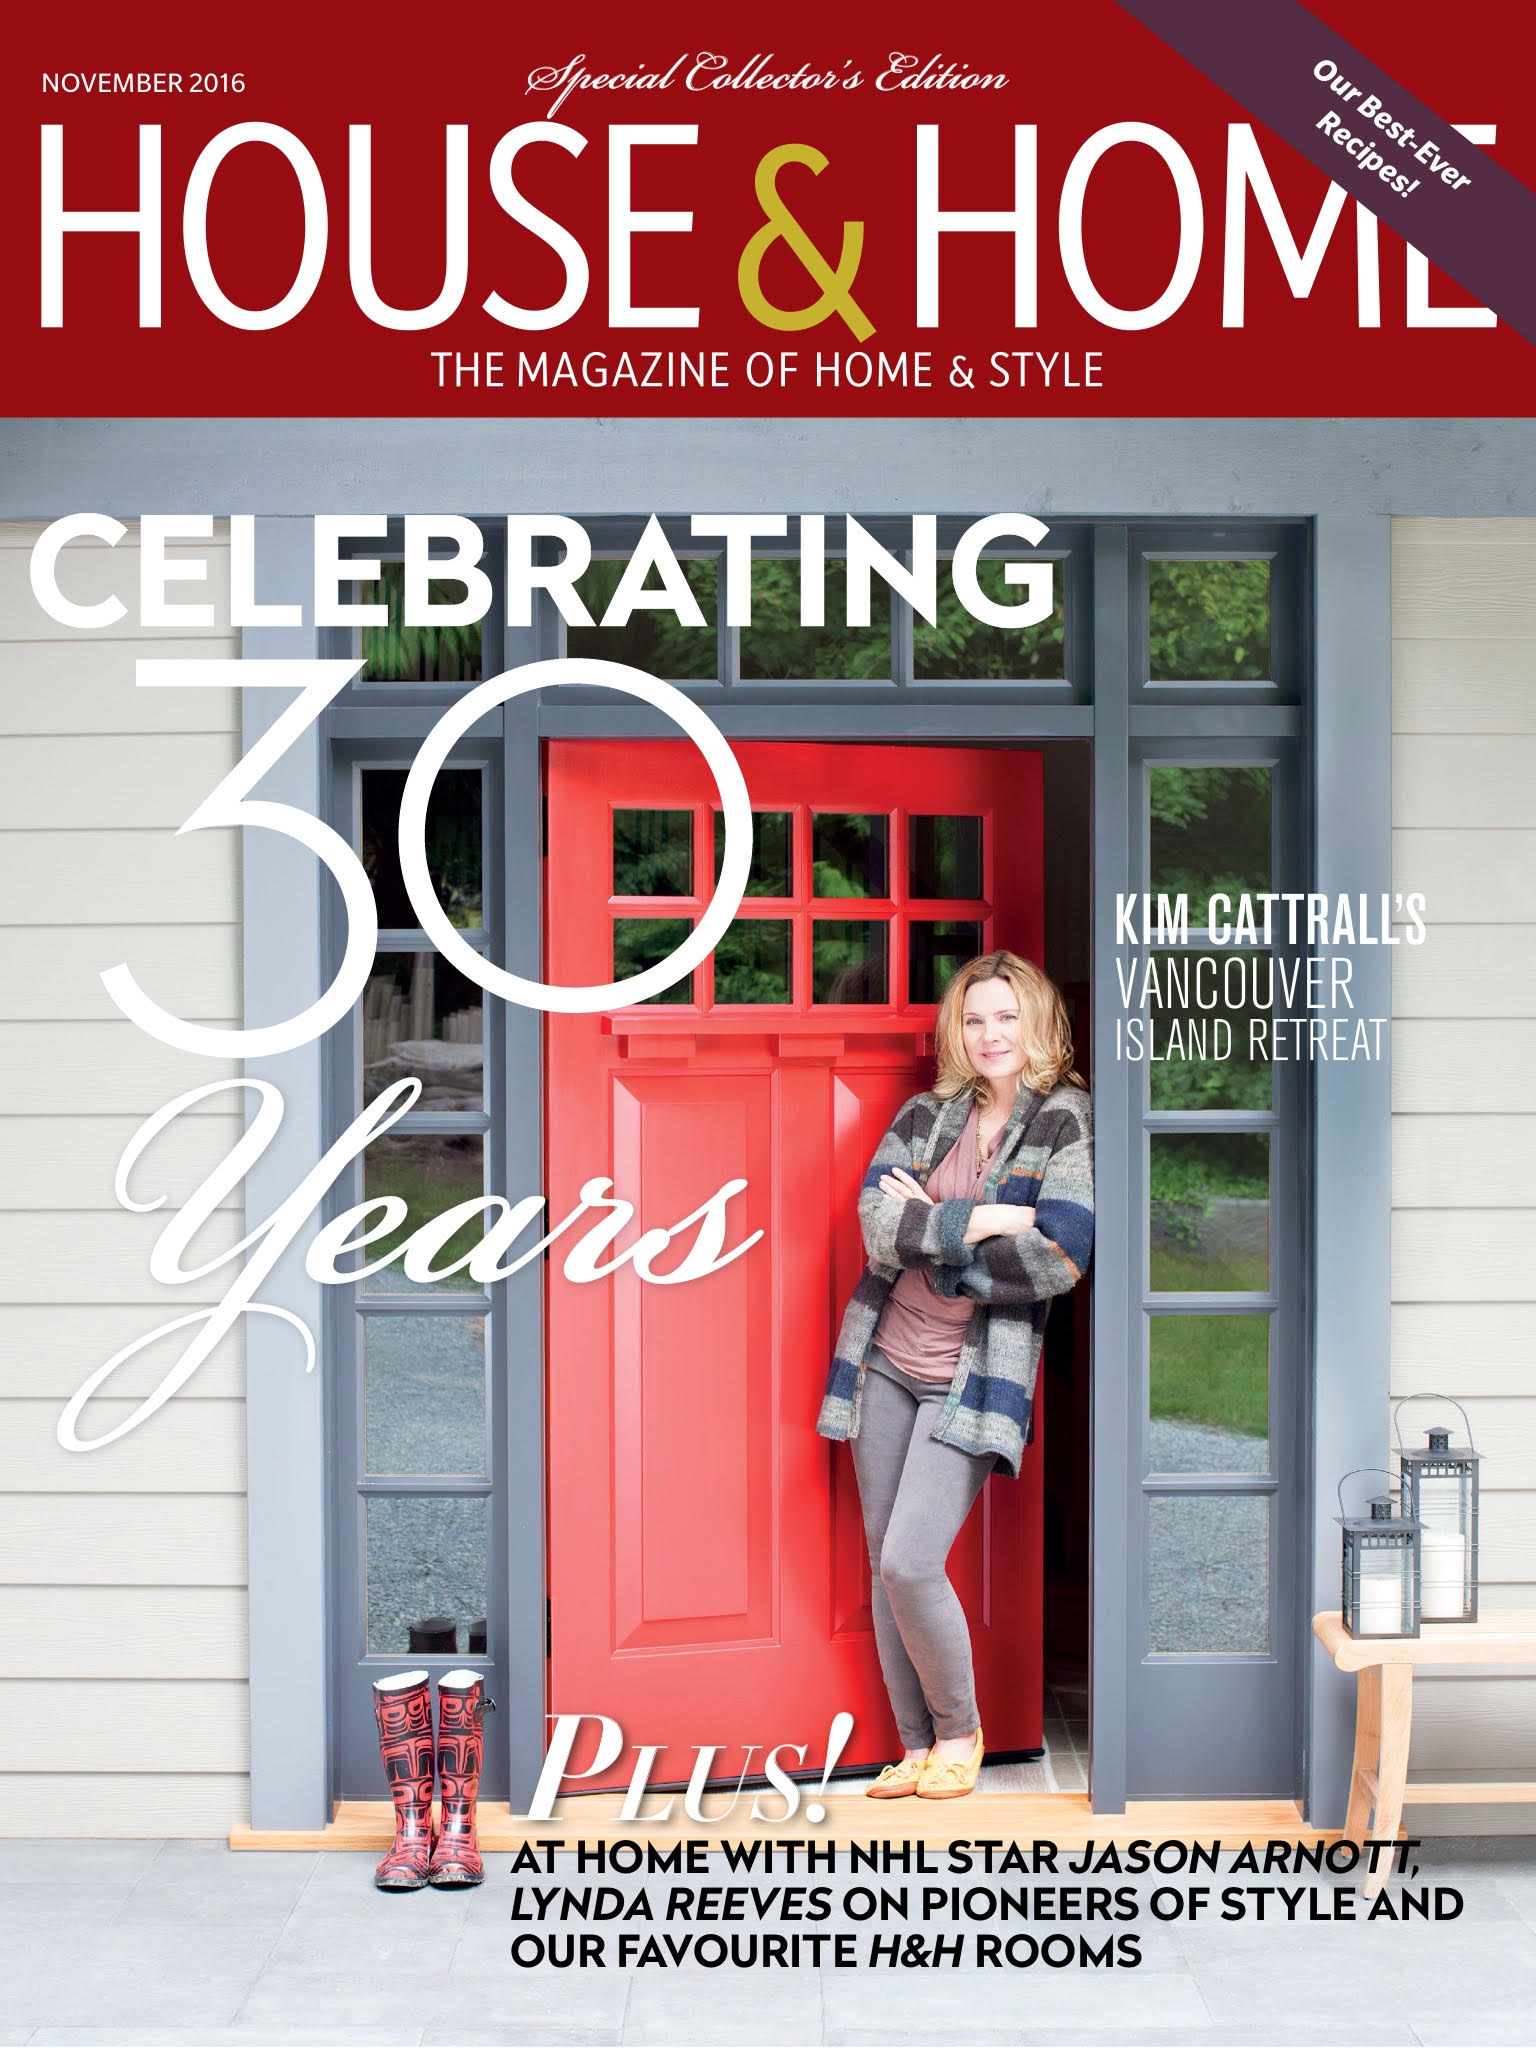 house-and-home-2016.jpg